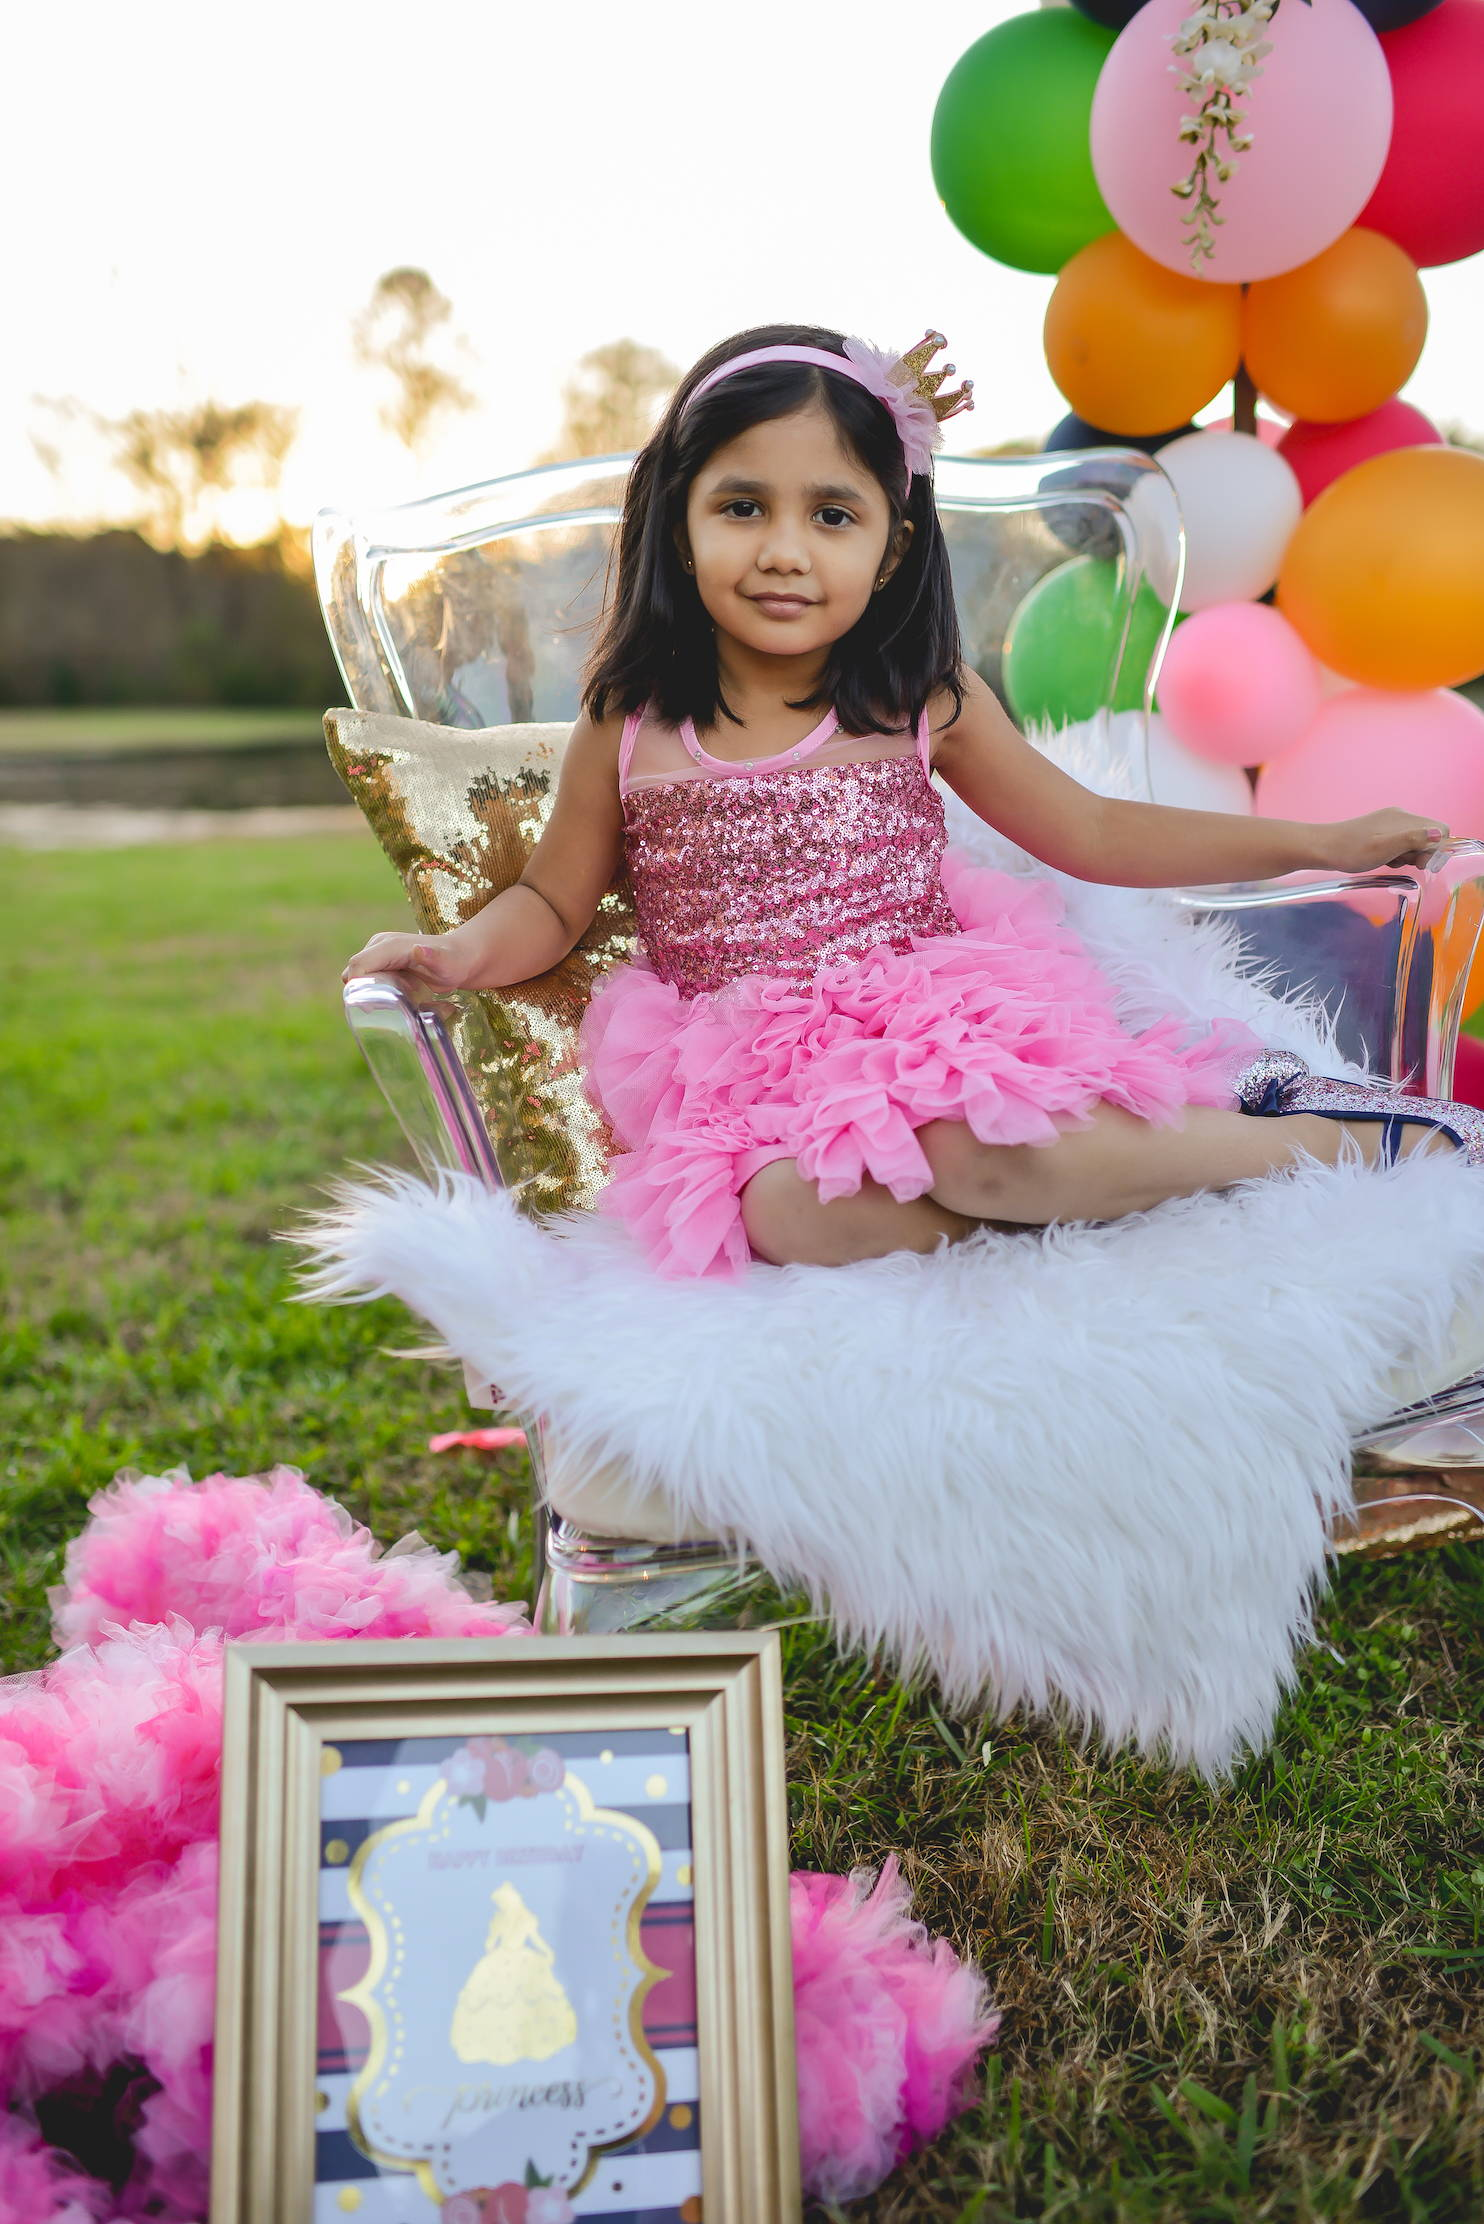 Princess Dresses for kids, Princess Party Ideas